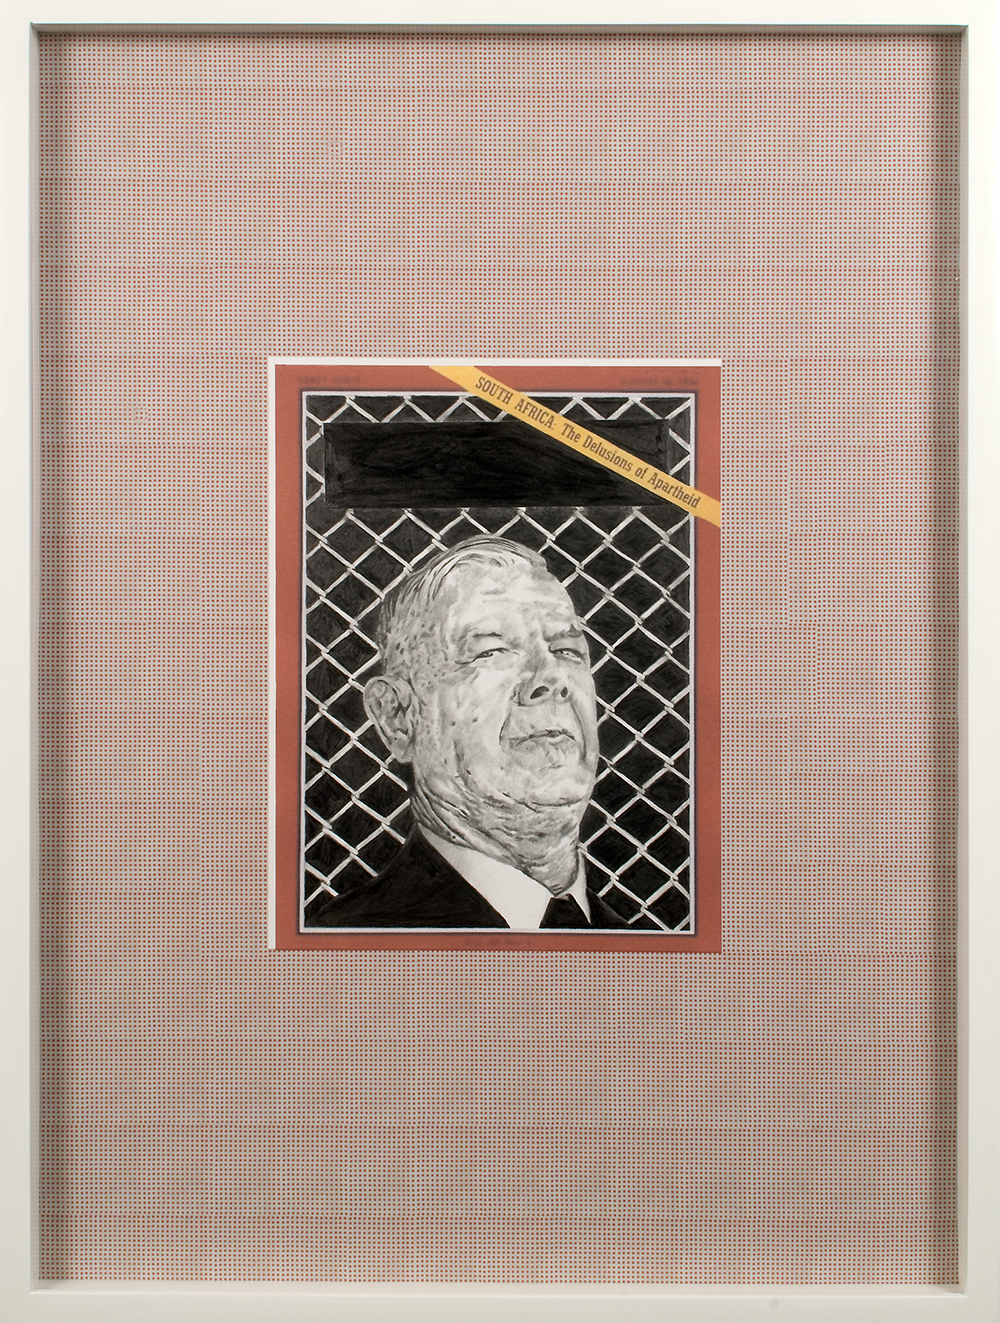 "no.30- Untitled (Hendrik Verwoerd) pencil on paper, ink jet print, 21""x28""/ 53cmx71cm,            2007/08"